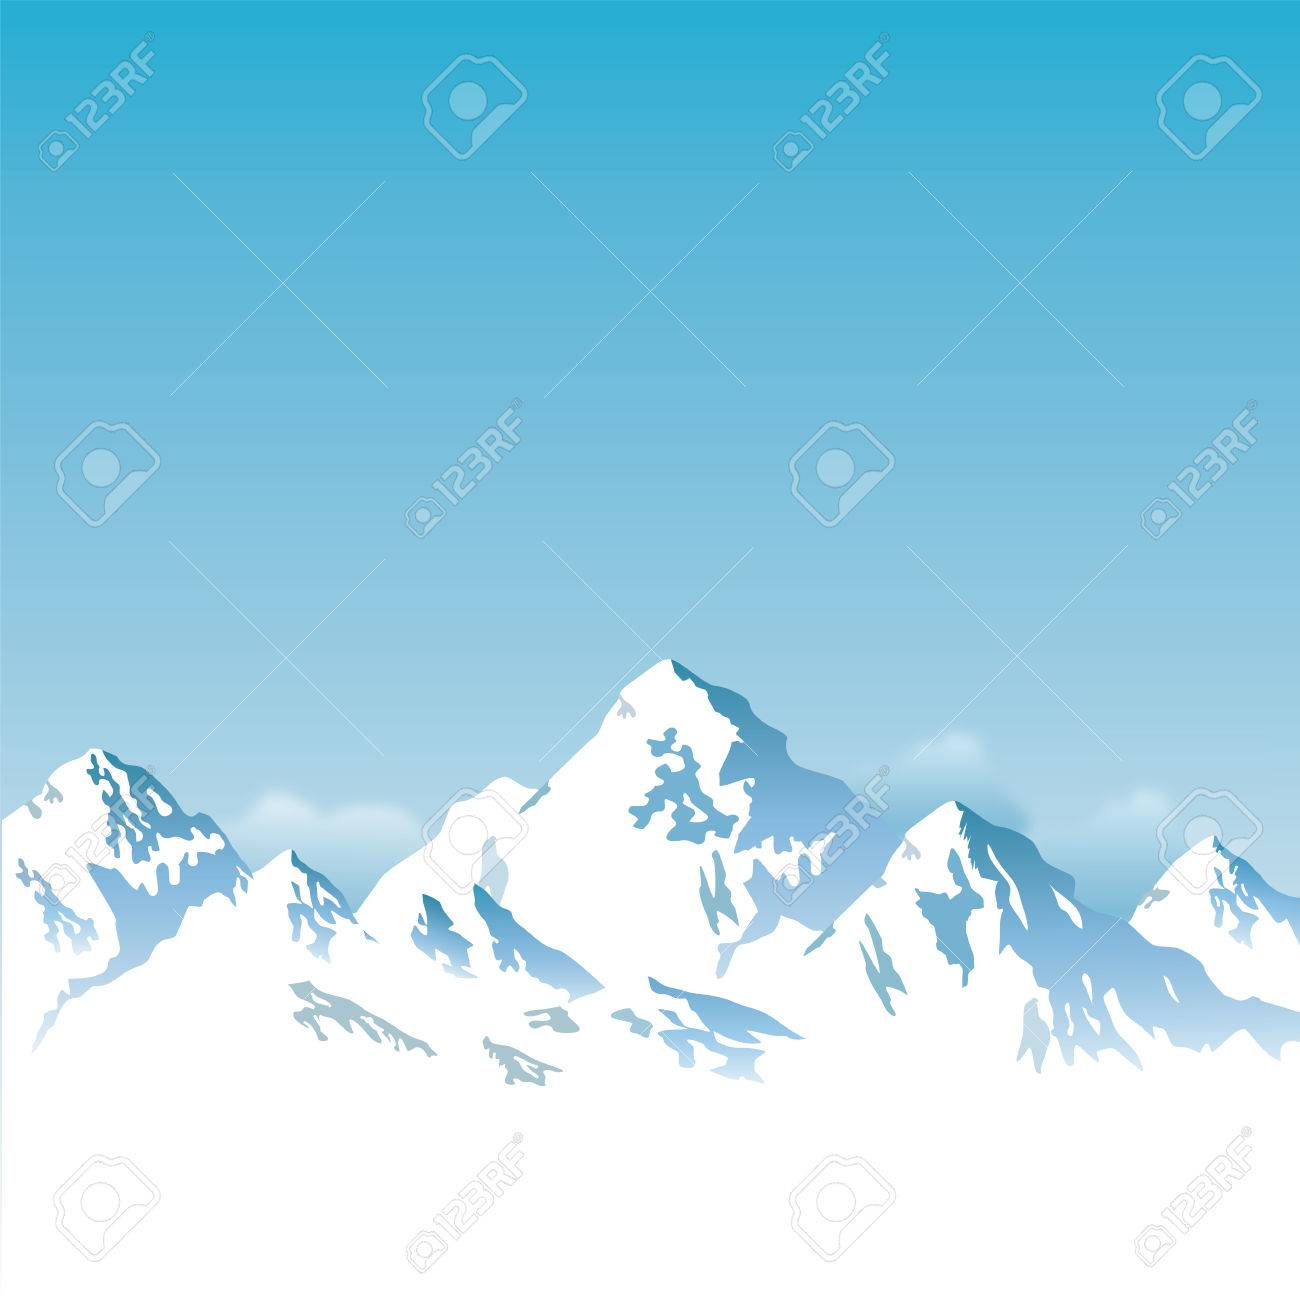 snow capped mountains - background - 57919071